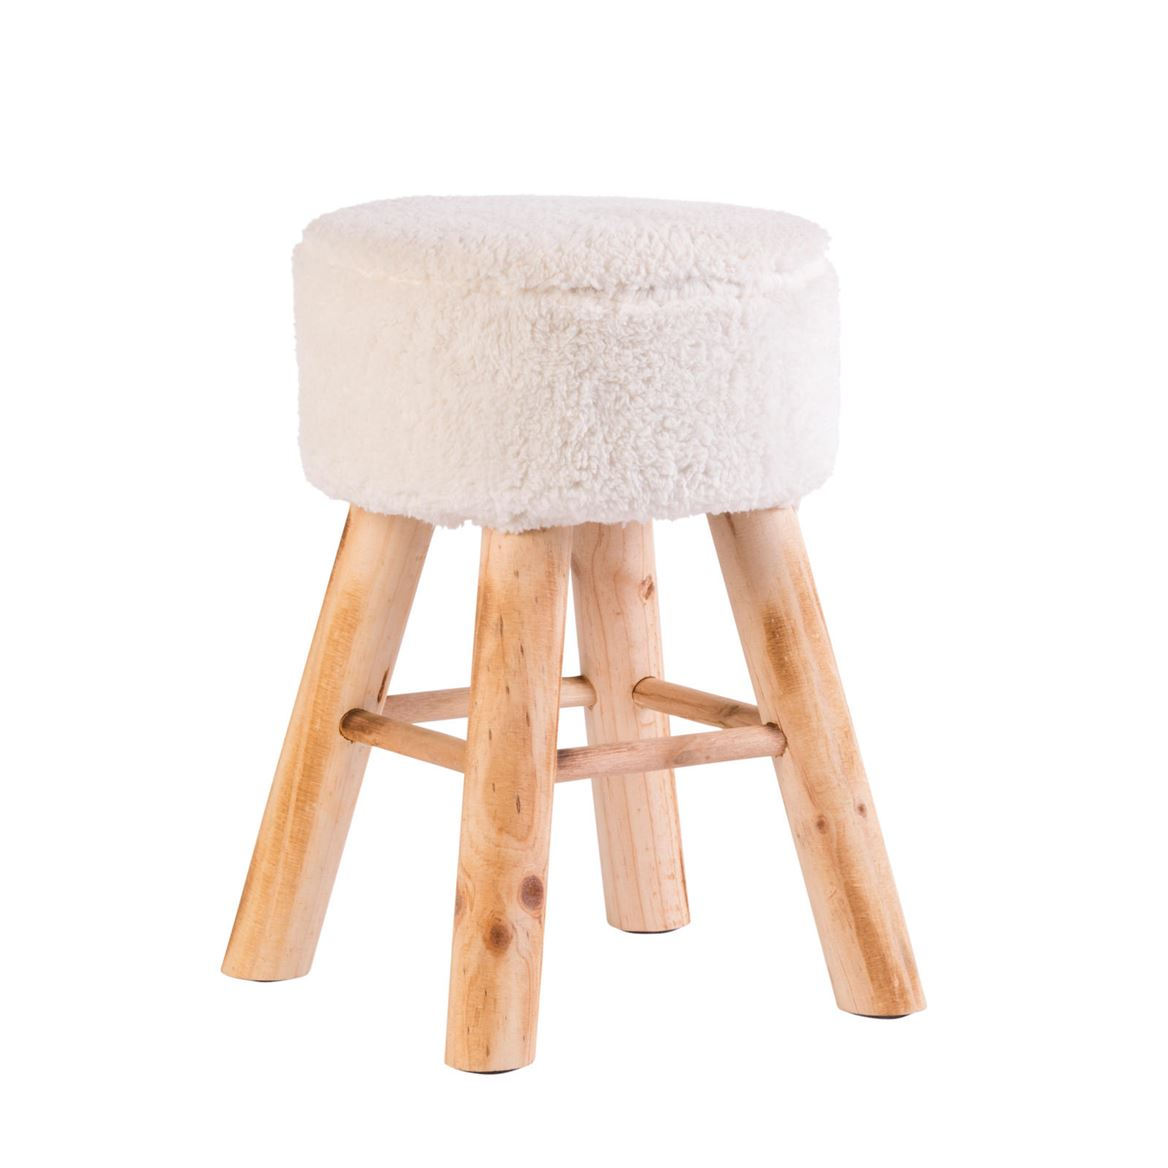 TED Taburete blanco, natural A 41 cm; Ø 30 cm_ted-taburete-blanco,-natural-a-41-cm;-ø-30-cm